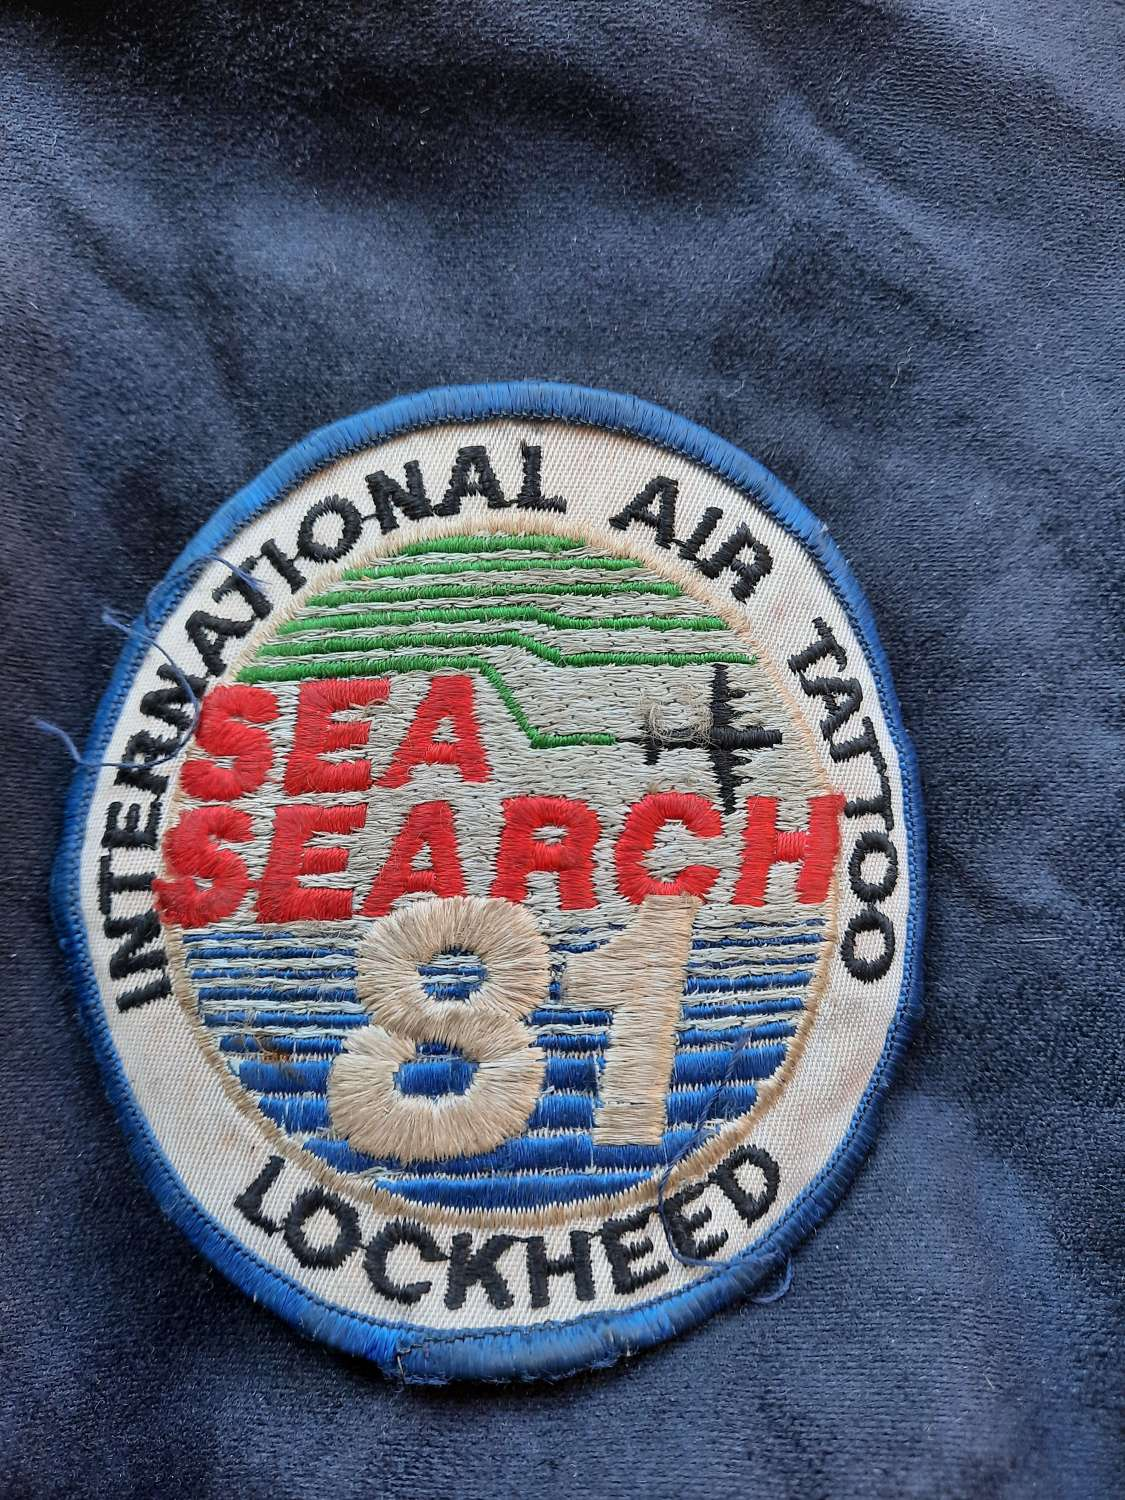 International Air Tattoo Sea Search 81 Patch